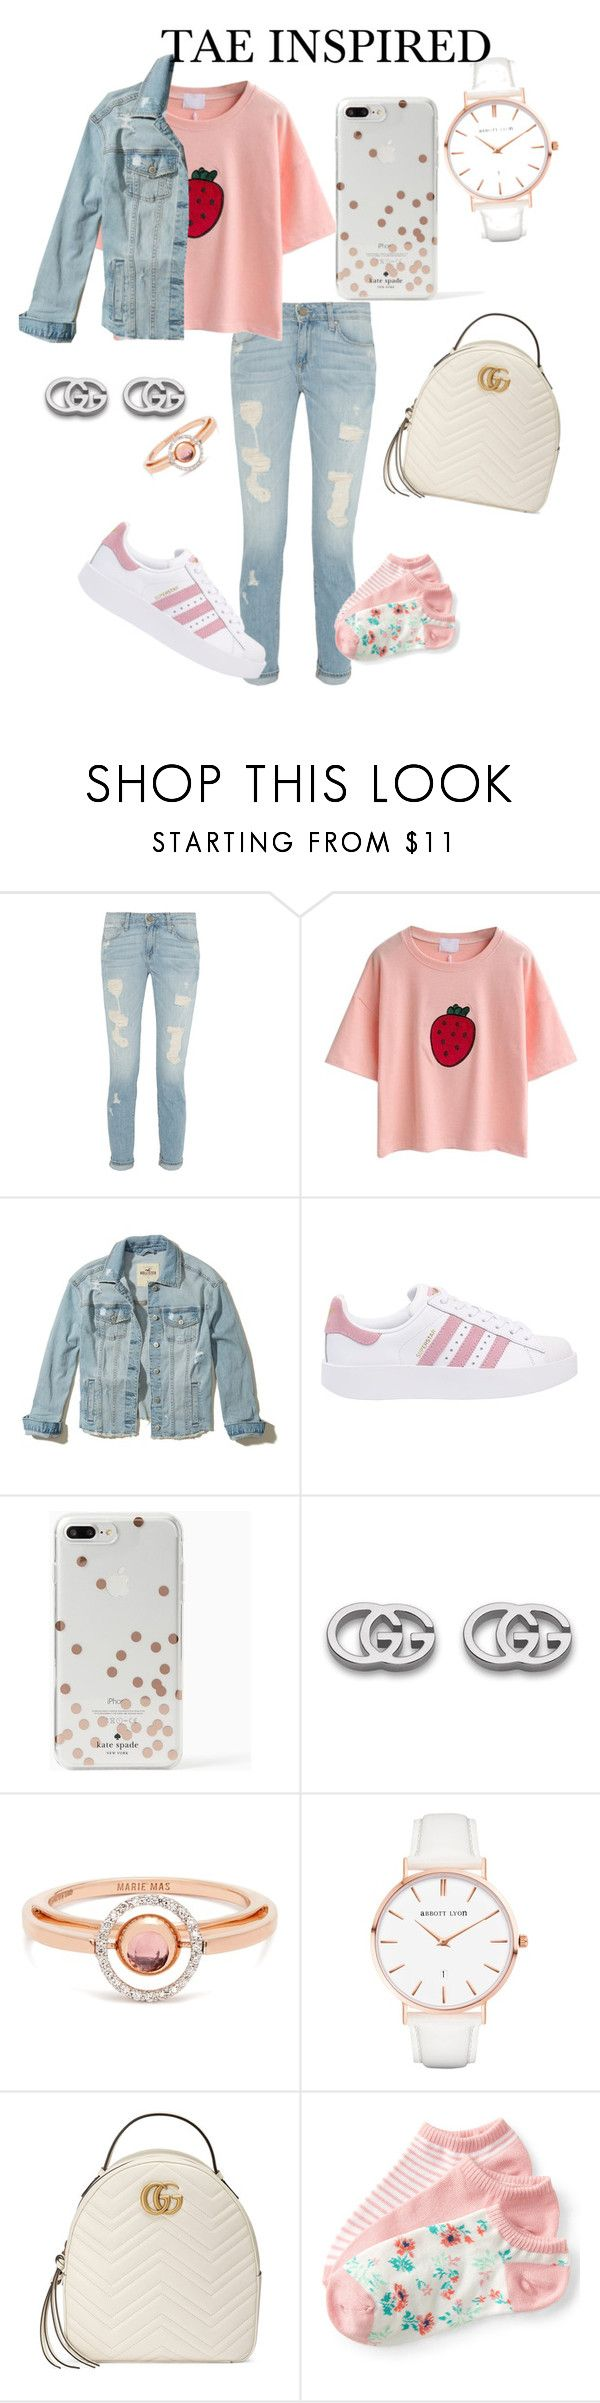 """BTS INSPIRED OUTFITS"" by btsmyhearteu on Polyvore featuring Hollister Co., adidas Originals, Kate Spade, Gucci, Marie Mas, Abbott Lyon and Aéropostale"